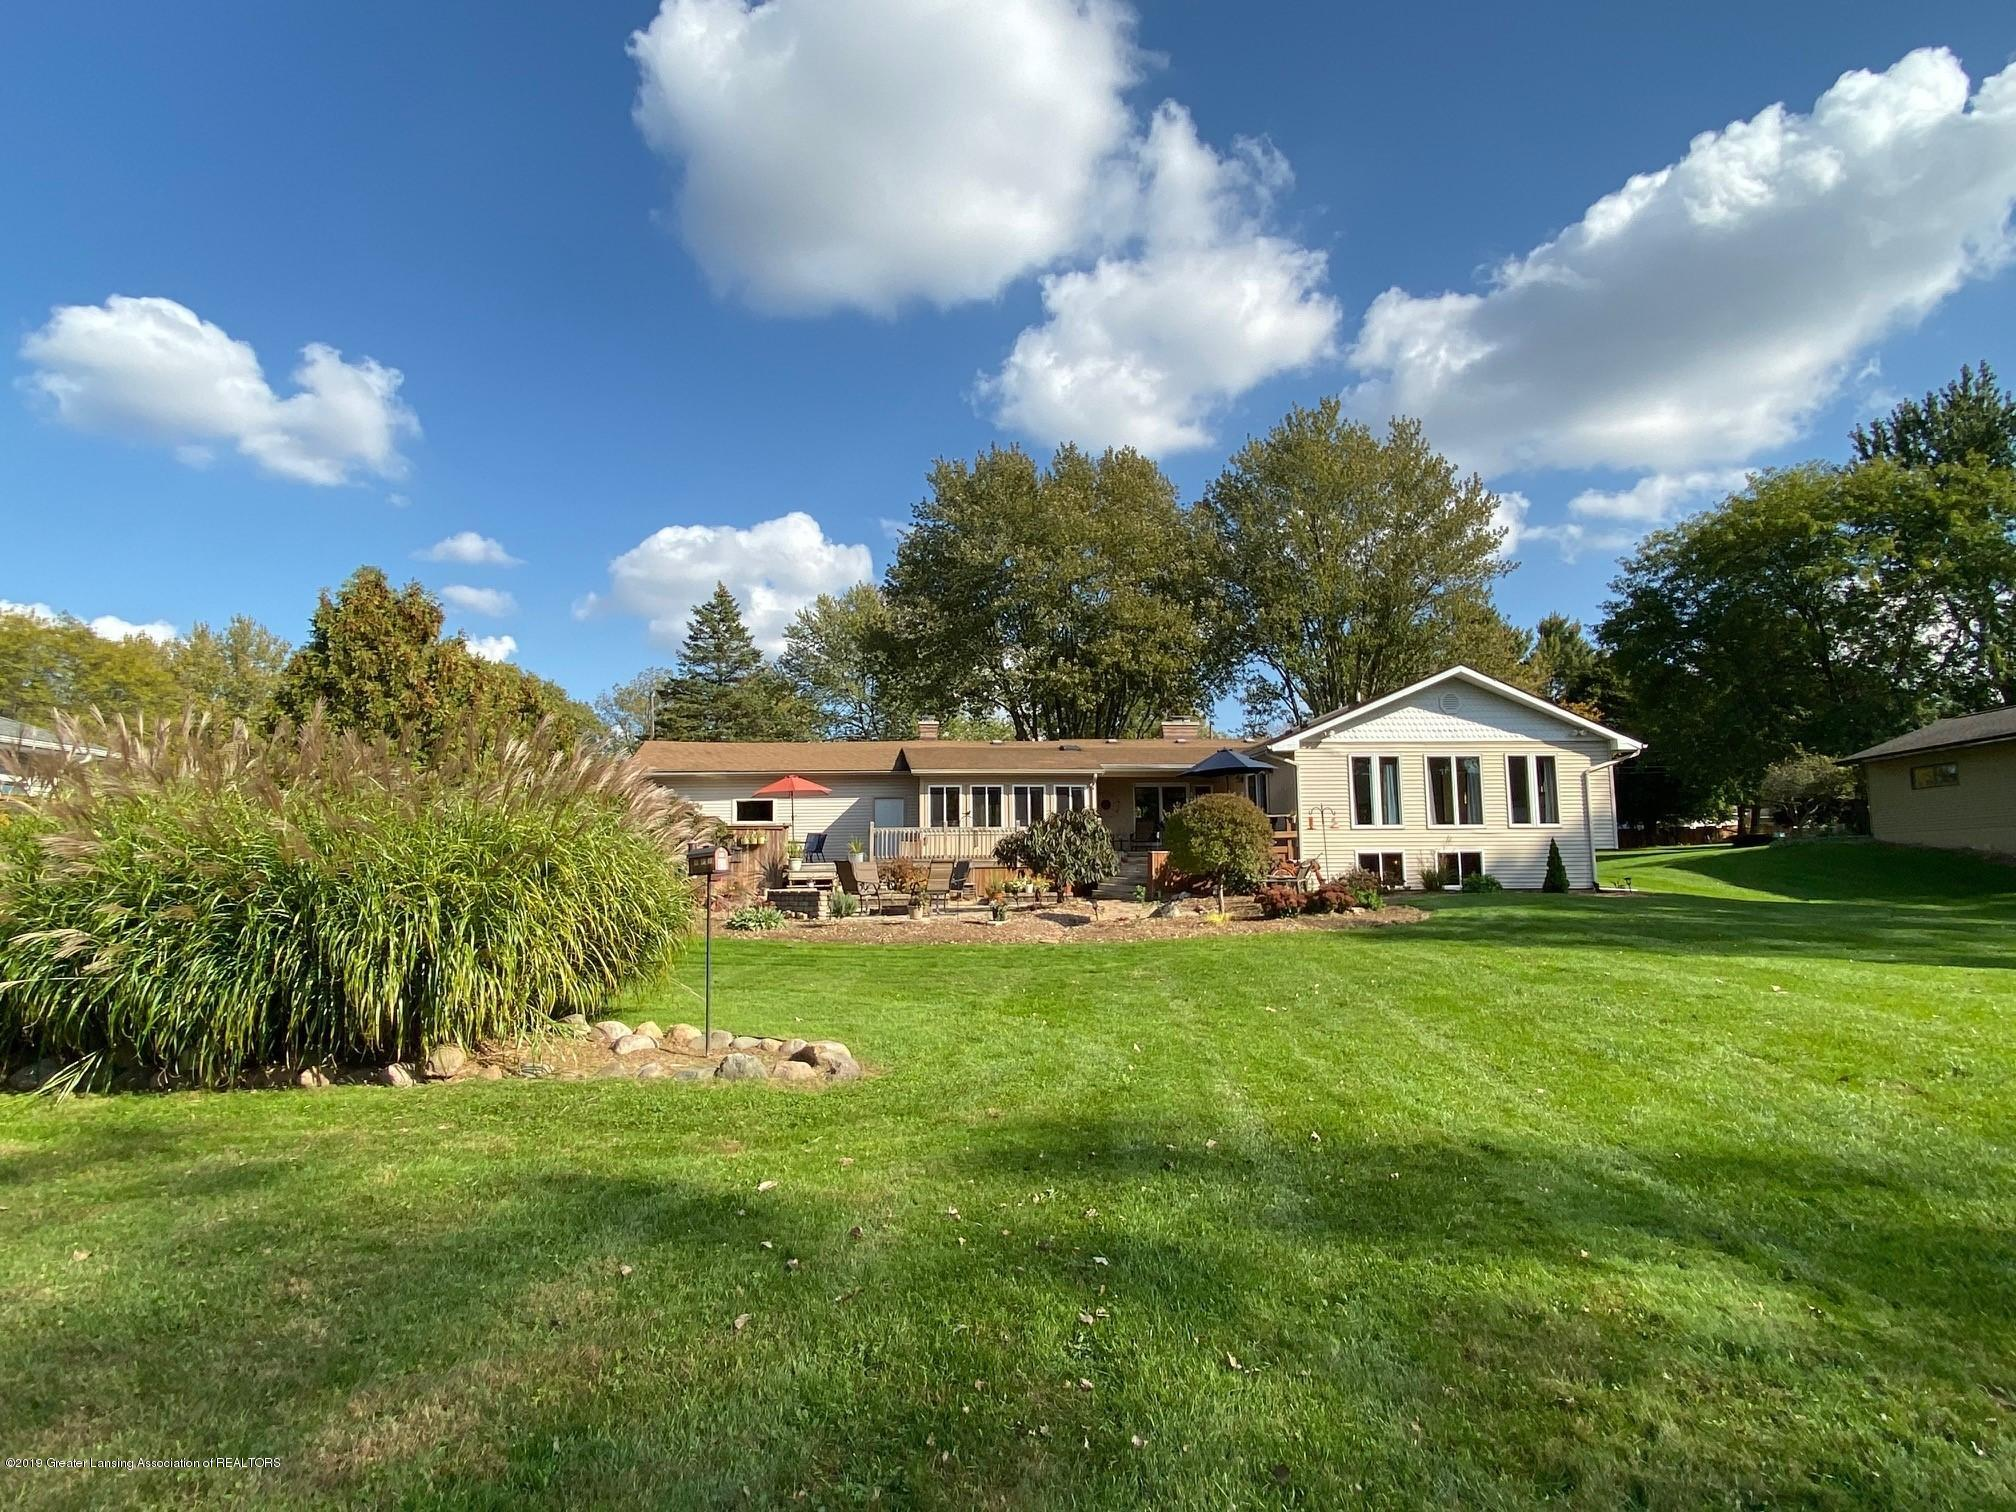 12925 E Melody Rd - A wonderful yard for fun and games - 10